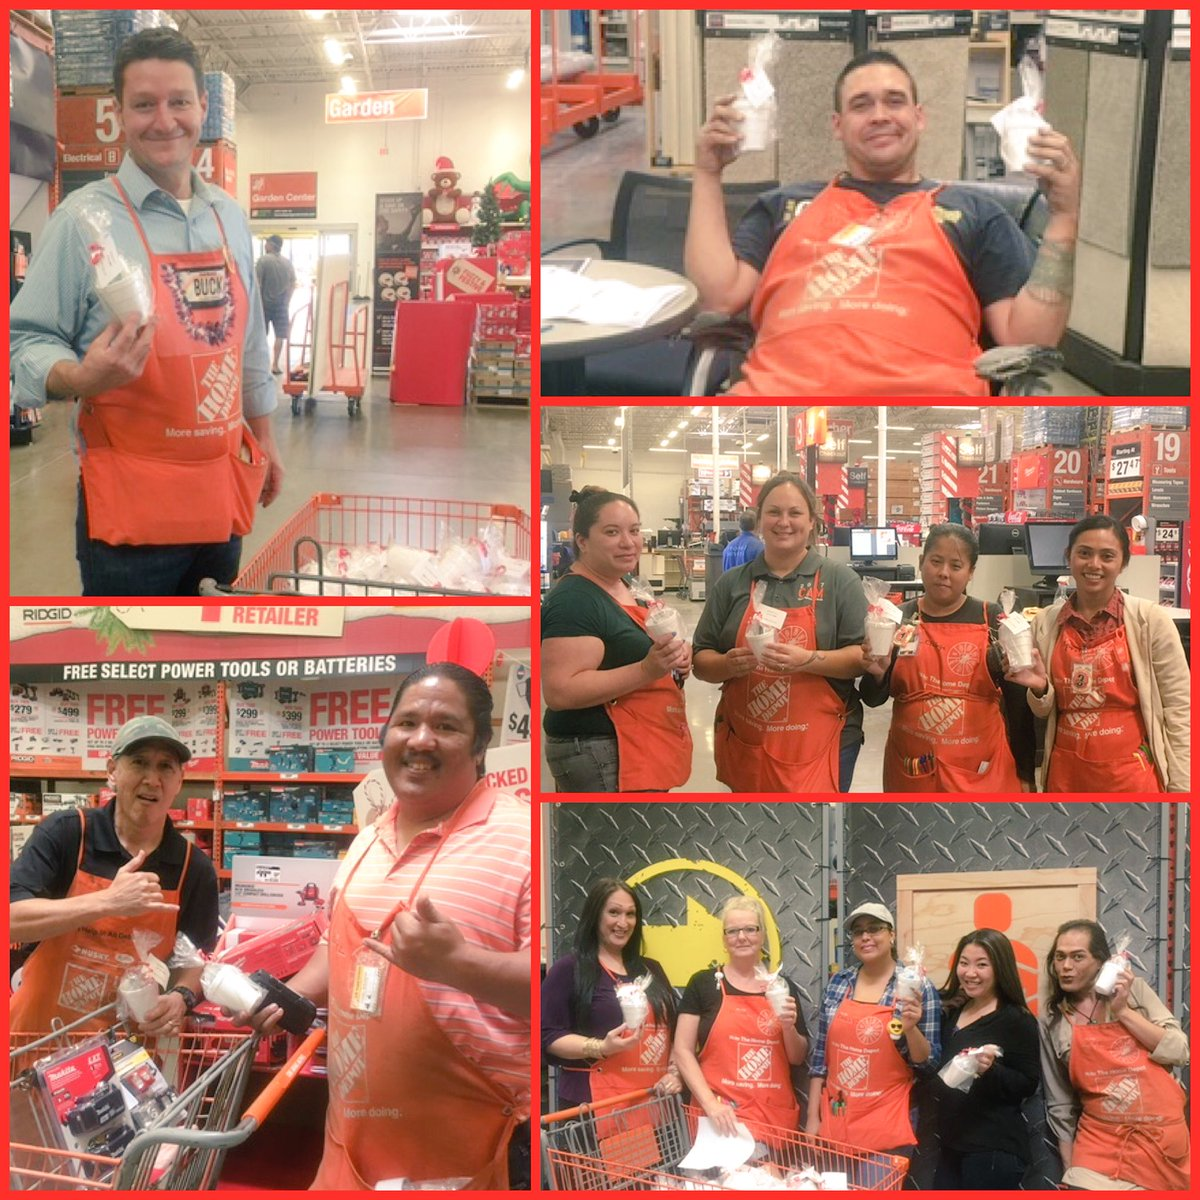 Chiemi Arai On Twitter Happy Cocoa Day At The Maui Home Depot We Make An Emotional Connection With Our Associates And Our Customers Visit our maui location to shop exclusive deals, get diy advice, or pick up your online purchase. chiemi arai on twitter happy cocoa